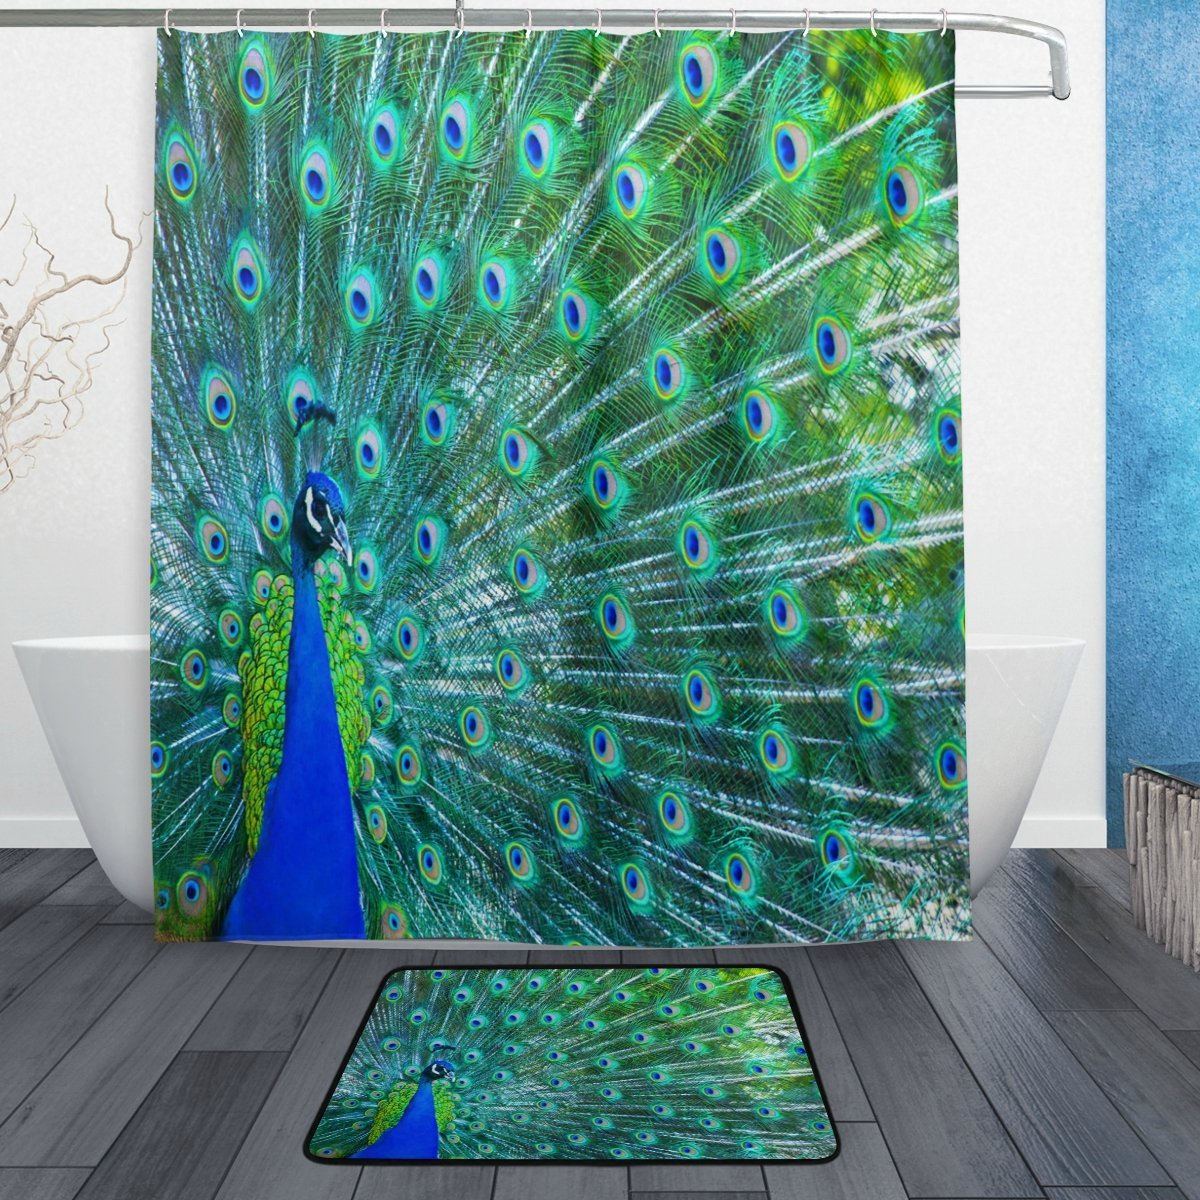 Beautiful Peacock with Feather Waterproof Polyester Fabric Shower Curtain with Hooks Doormat Bath Floor Mat Bathroom Home Decor